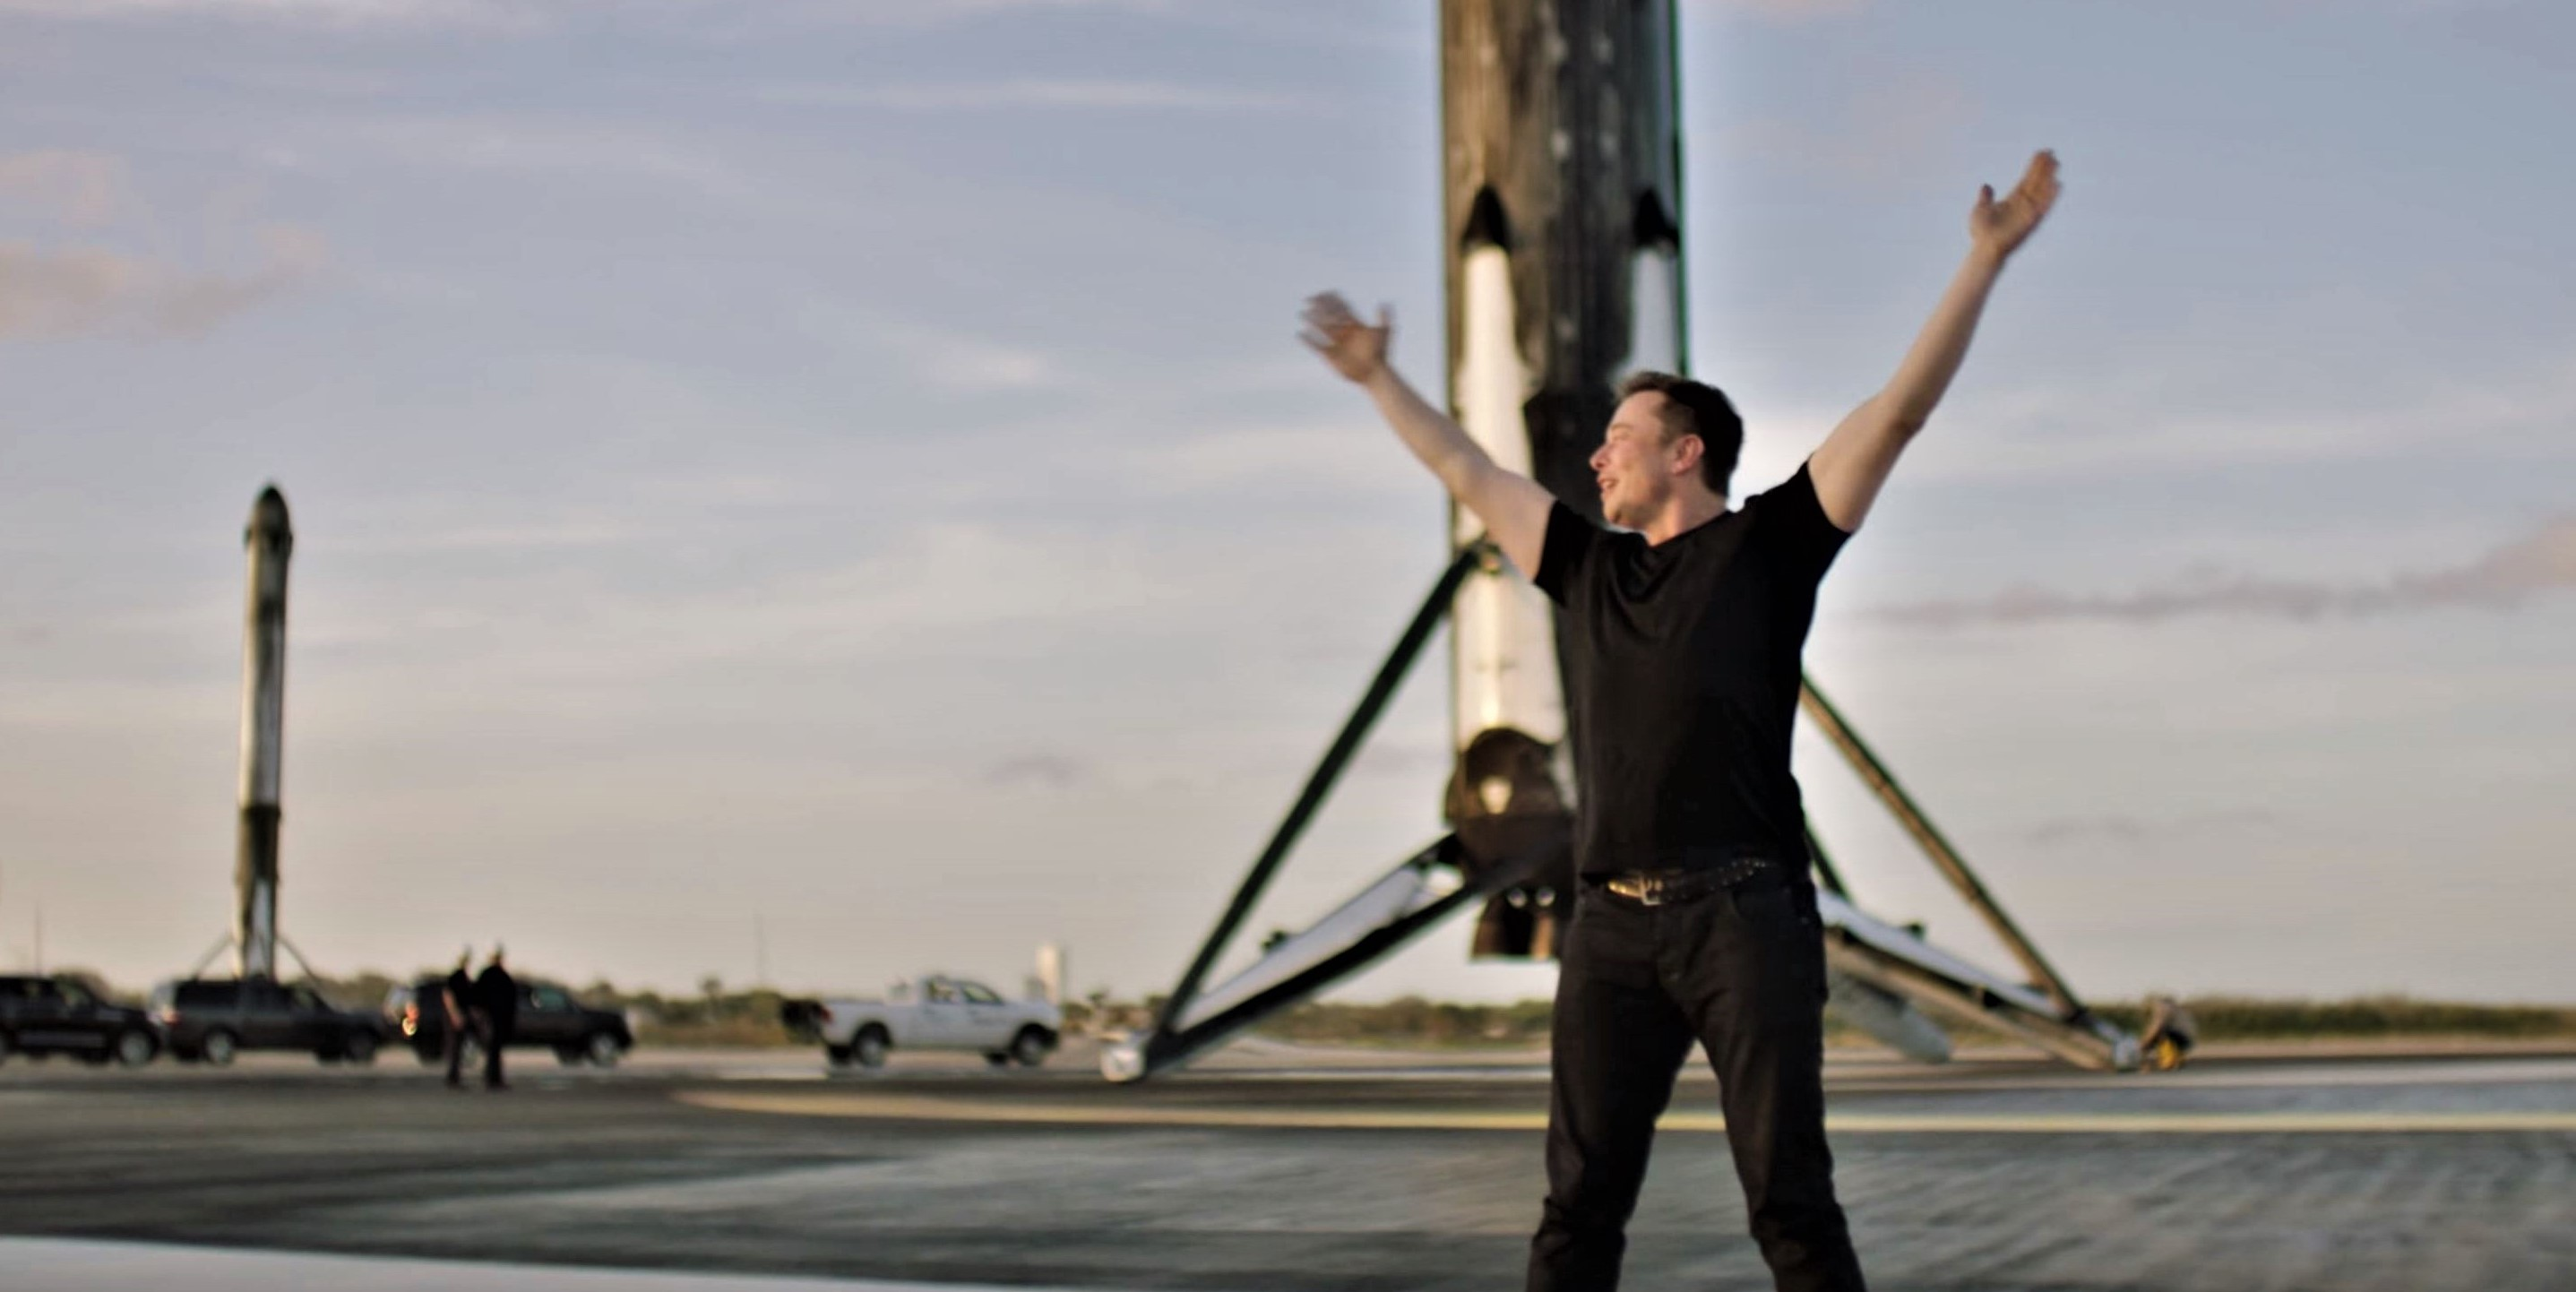 Falcon Heavy and Elon Musk at LZ-1 (SpaceX & National Geographic) 1 edit